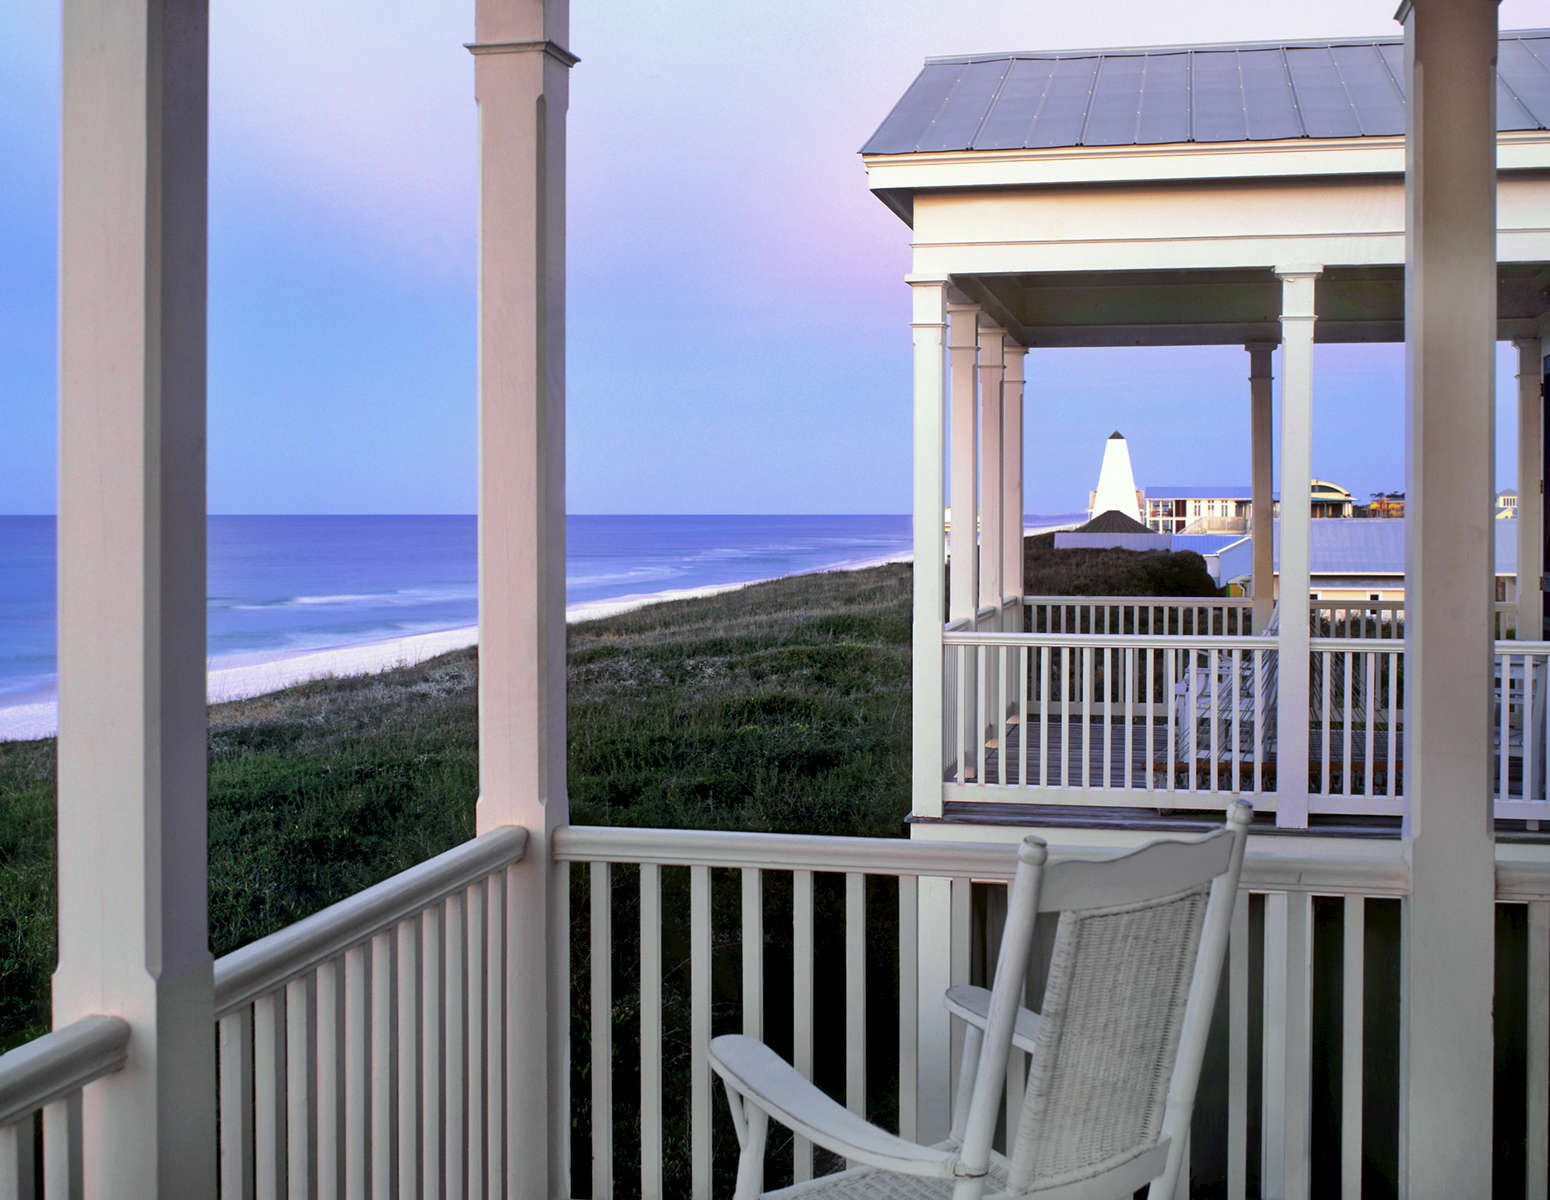 Balcony View at duskSeaside Florida